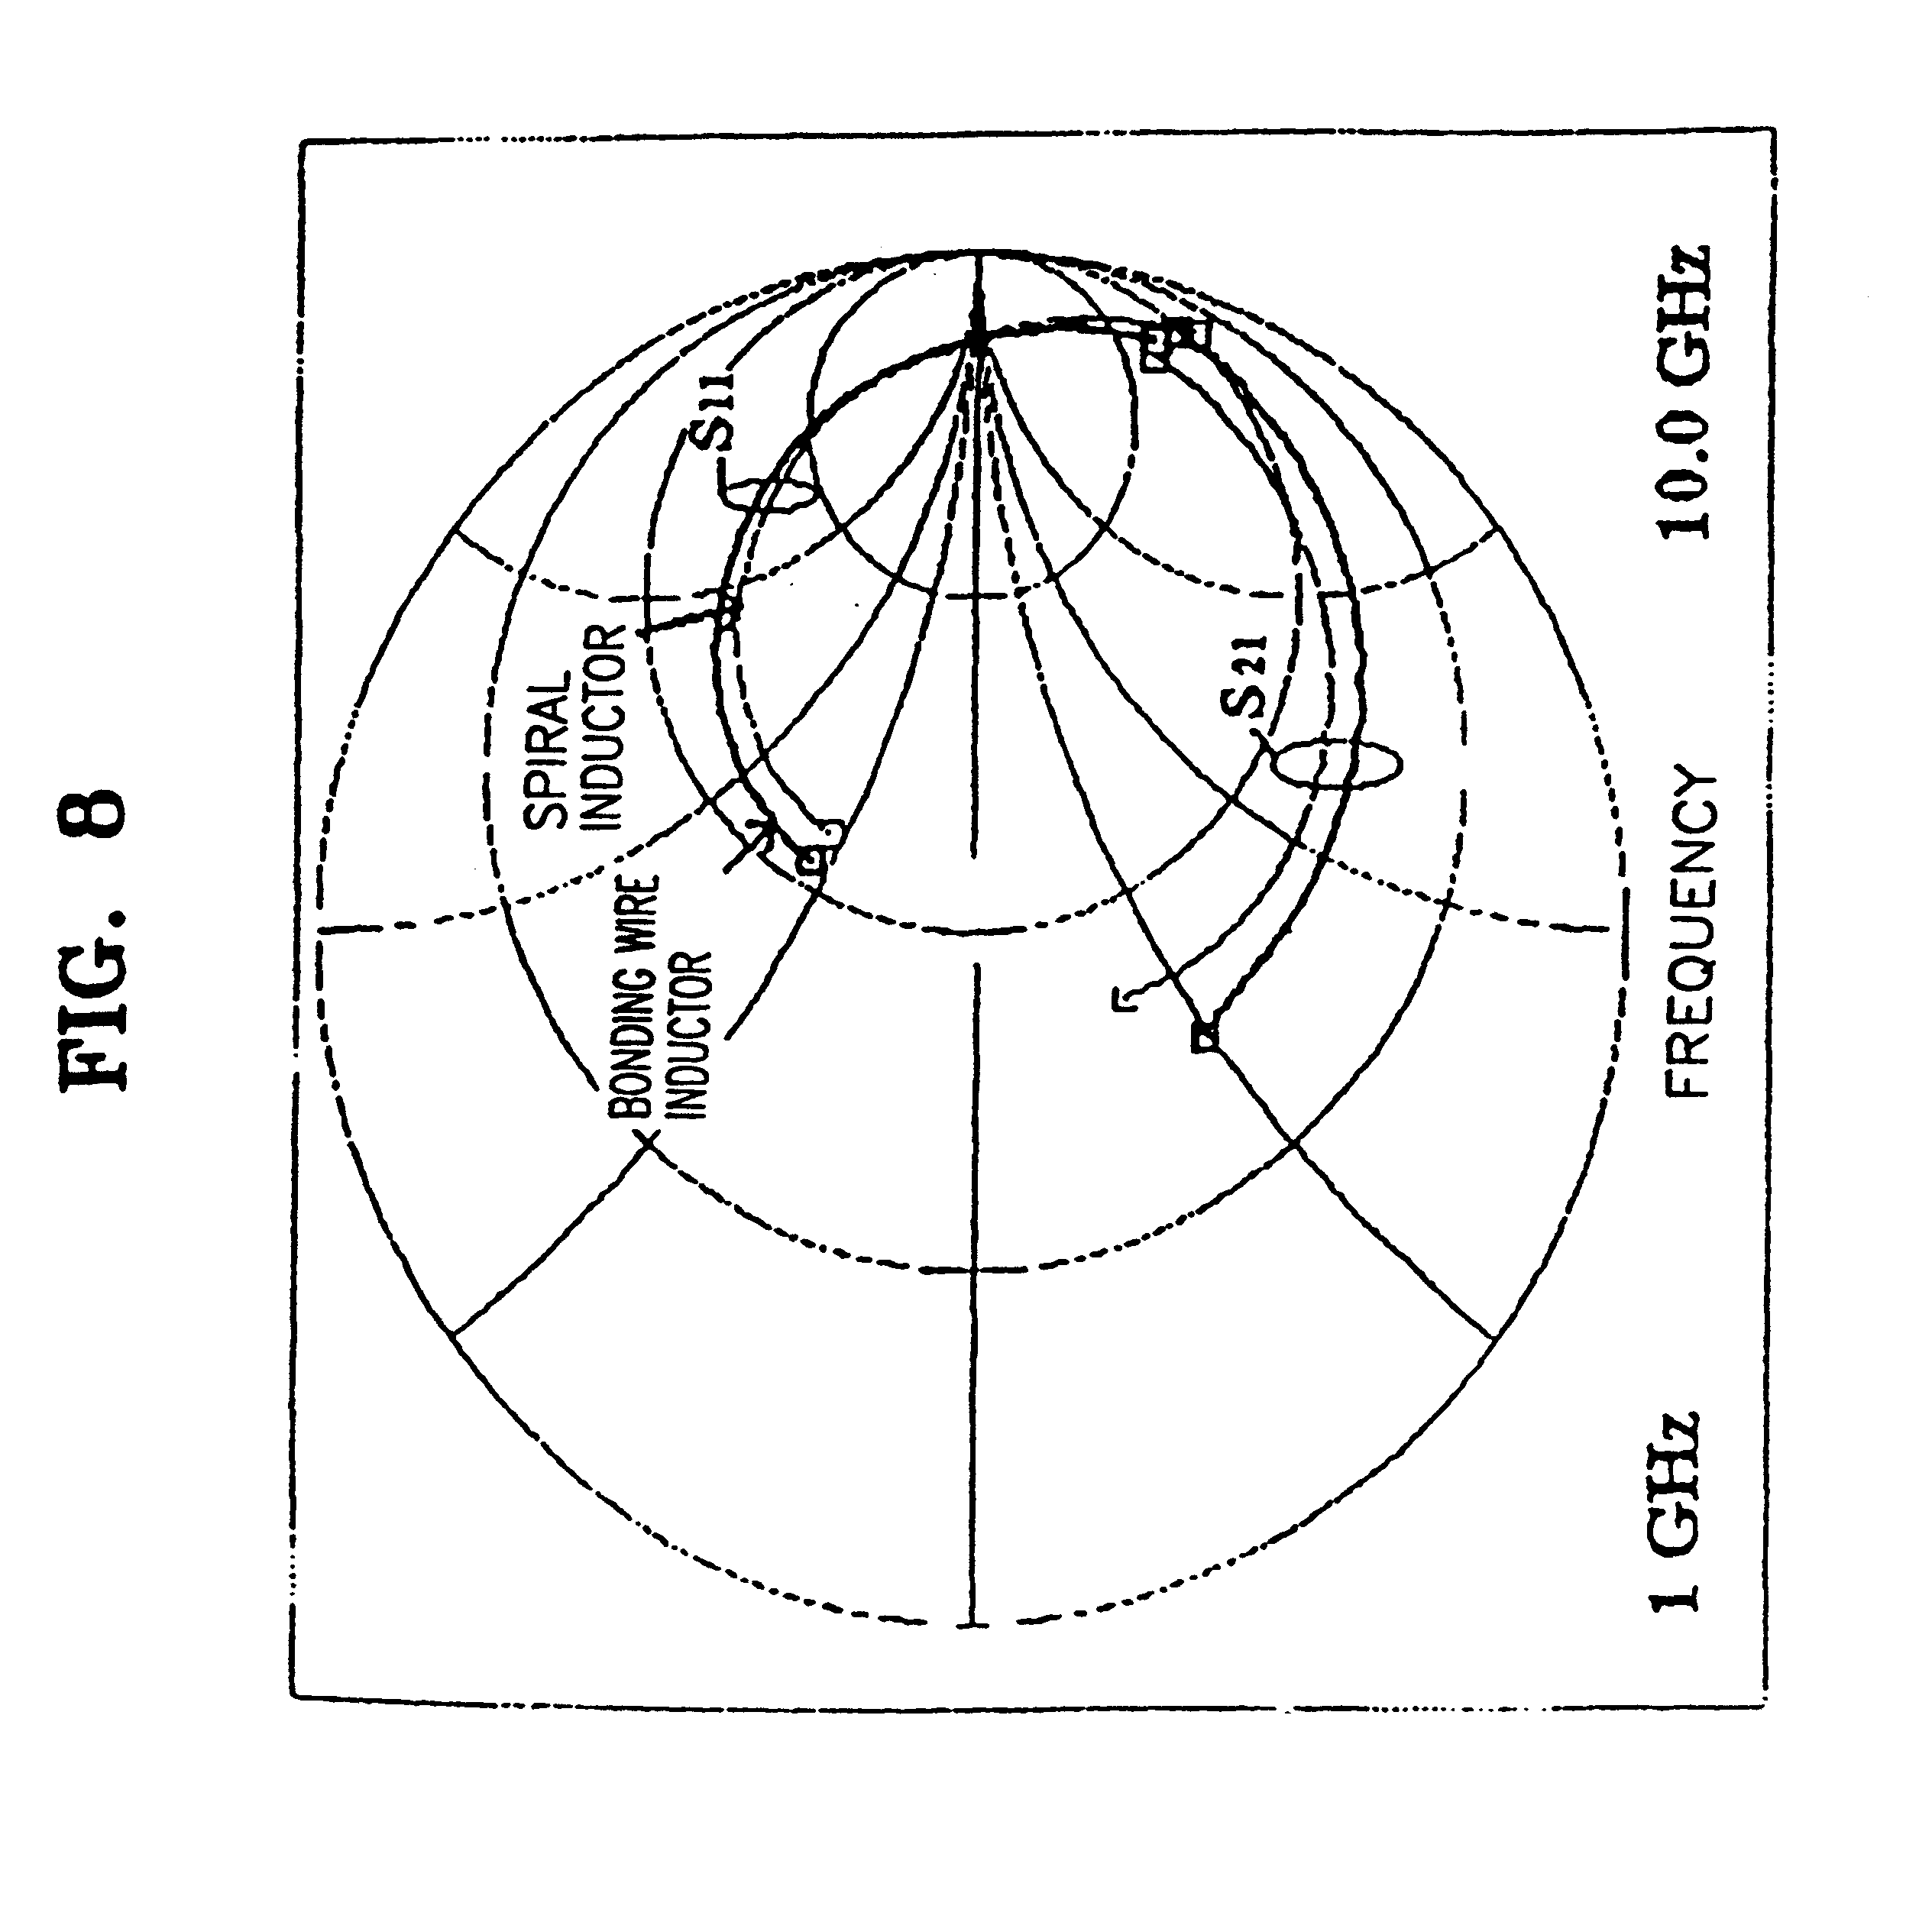 patent us6775901 - bonding wire inductor